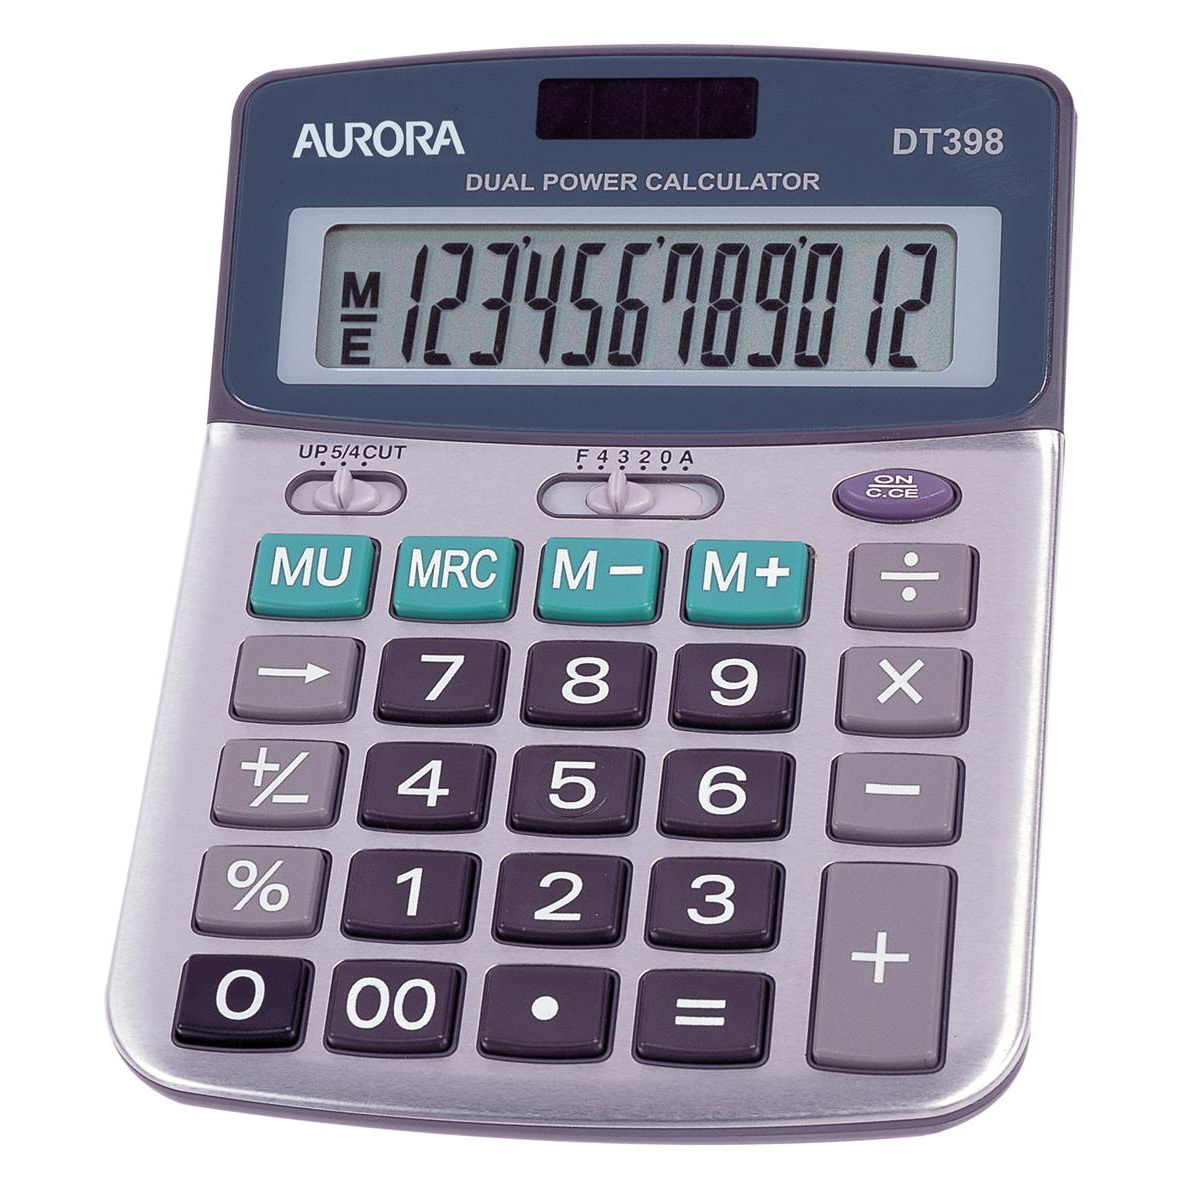 Desktop Calculator Aurora Semi-desk Calculator 12 Digit 3 Key Memory Battery/Solar Power 103x30x138mm Grey Ref DT398